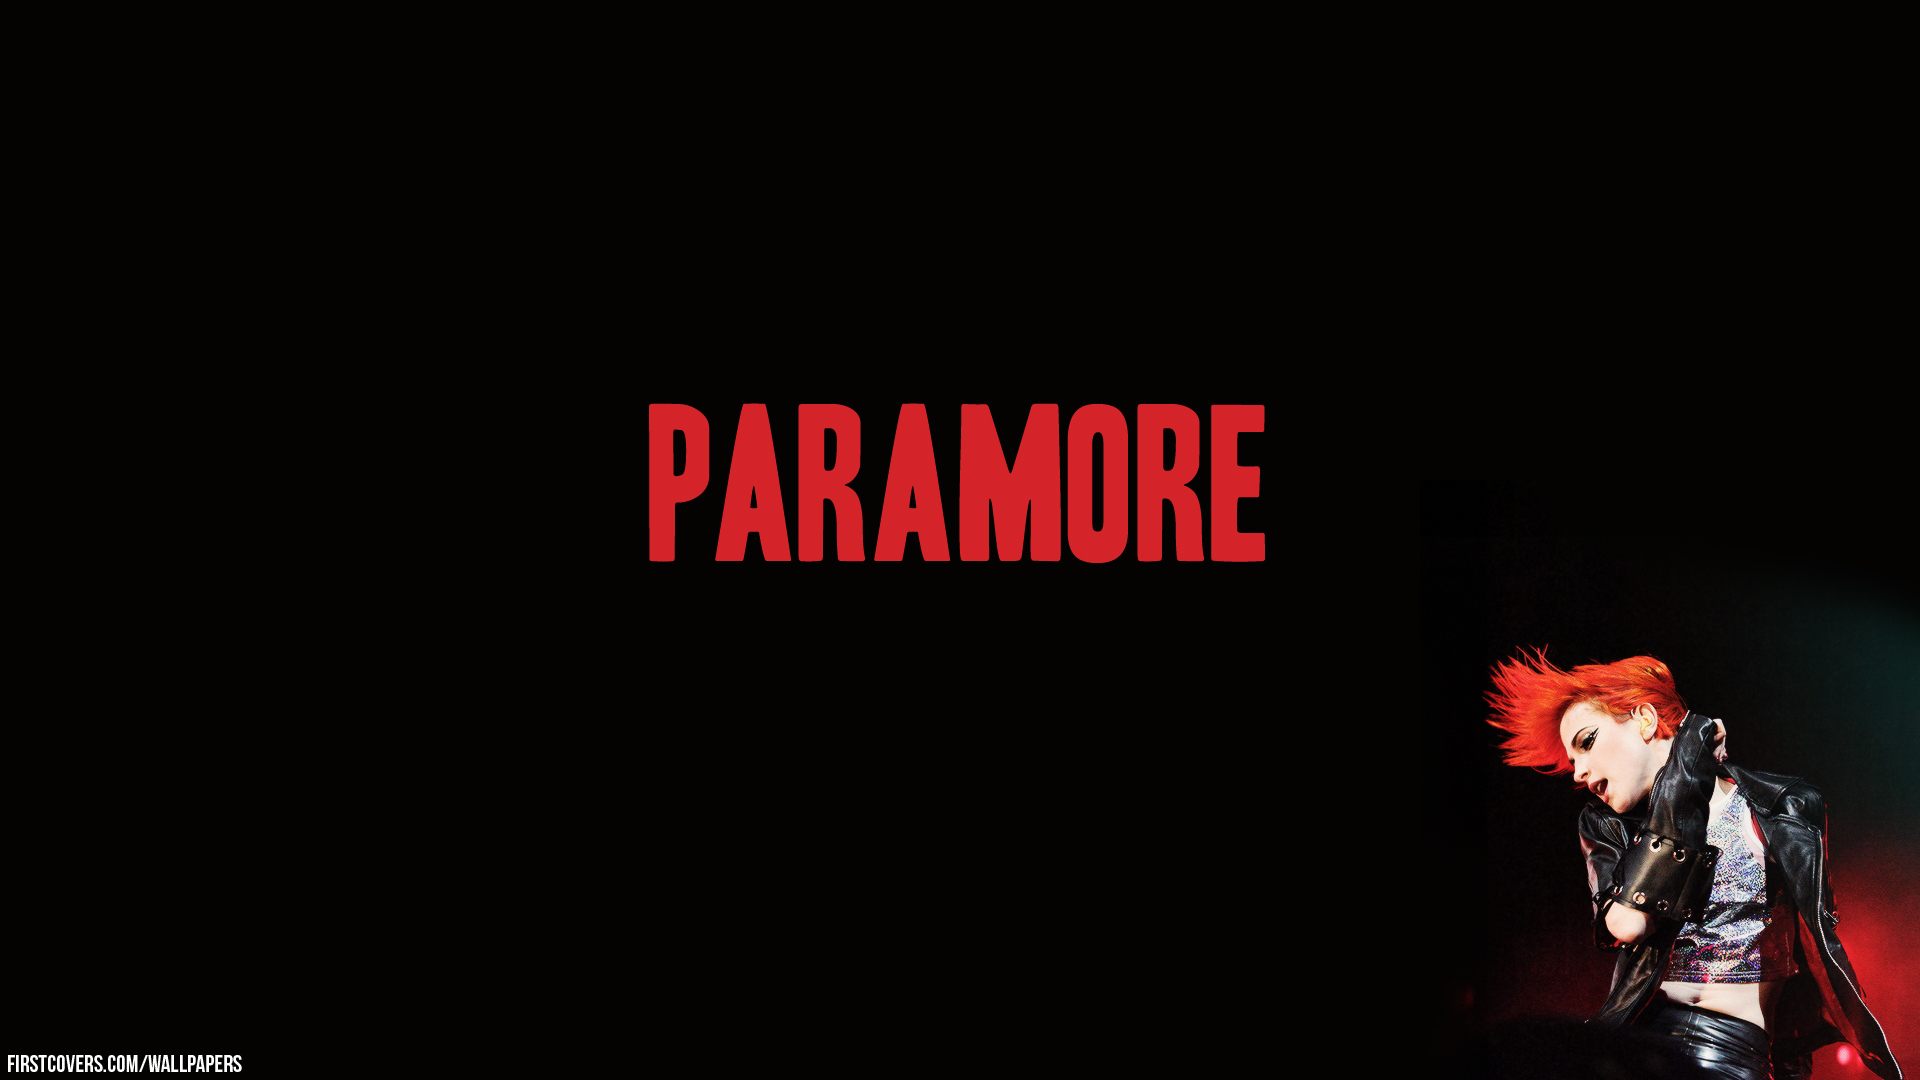 ... URL: http://www.firstcovers.com/wallpapers/hd-paramore-wallpapers